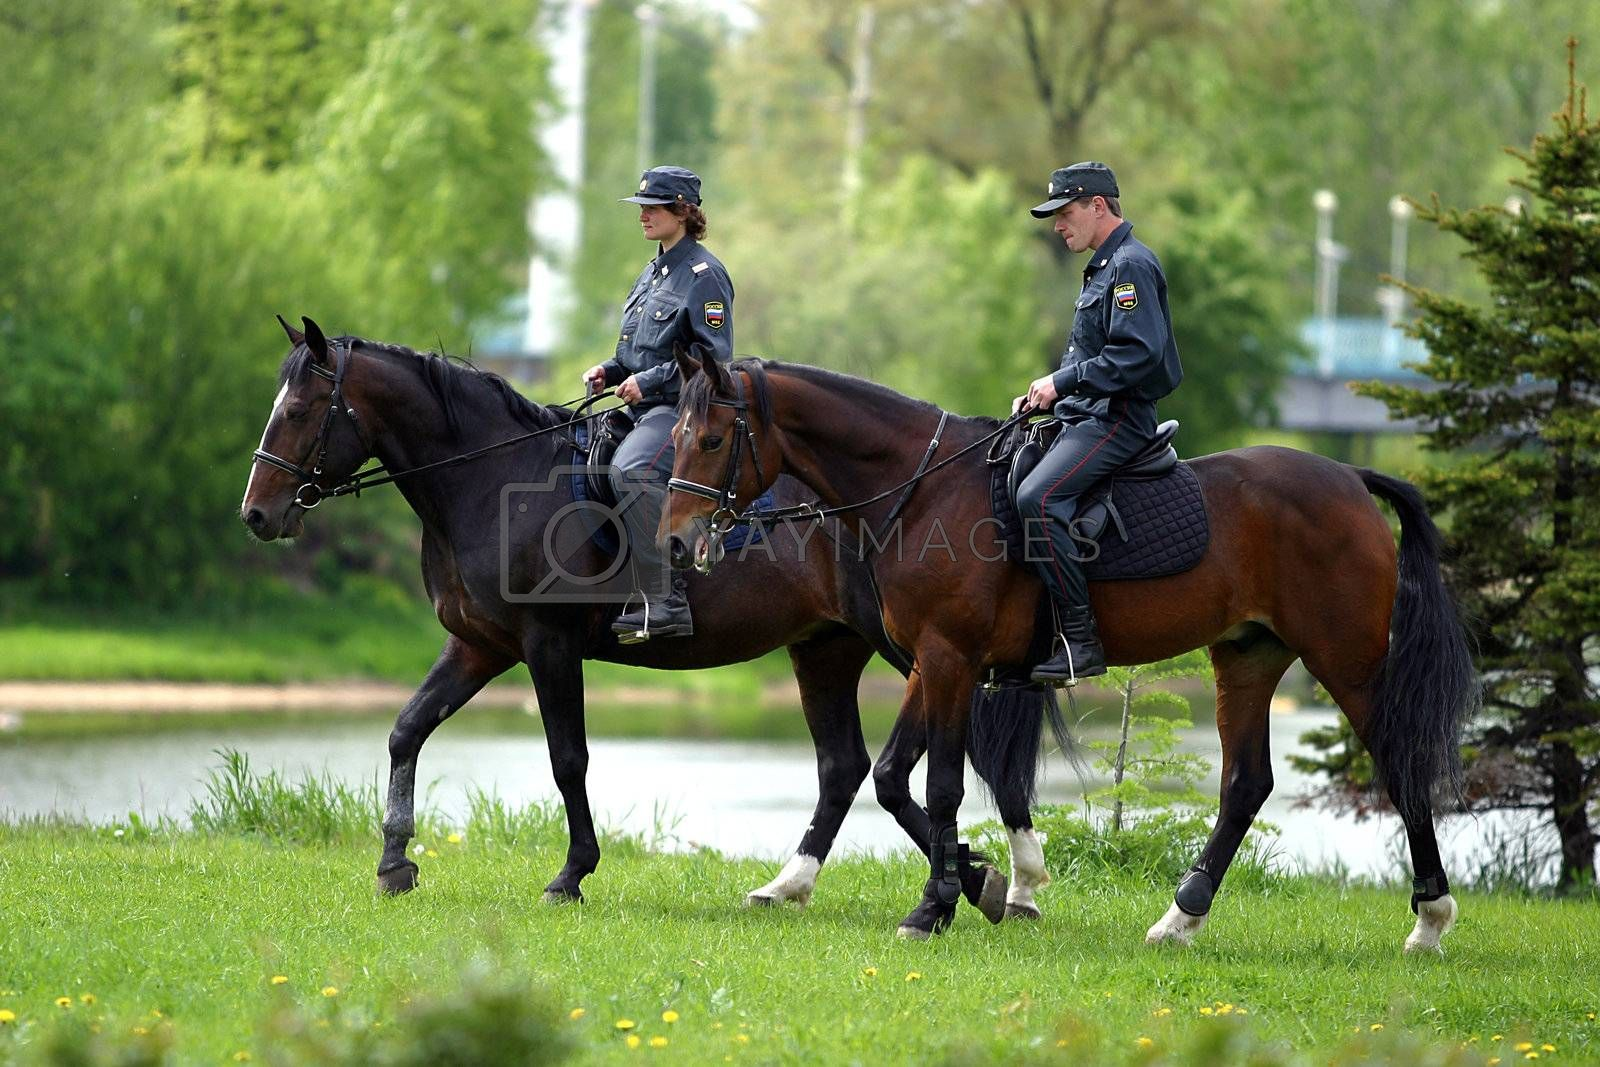 The Russian policeman on brown horses